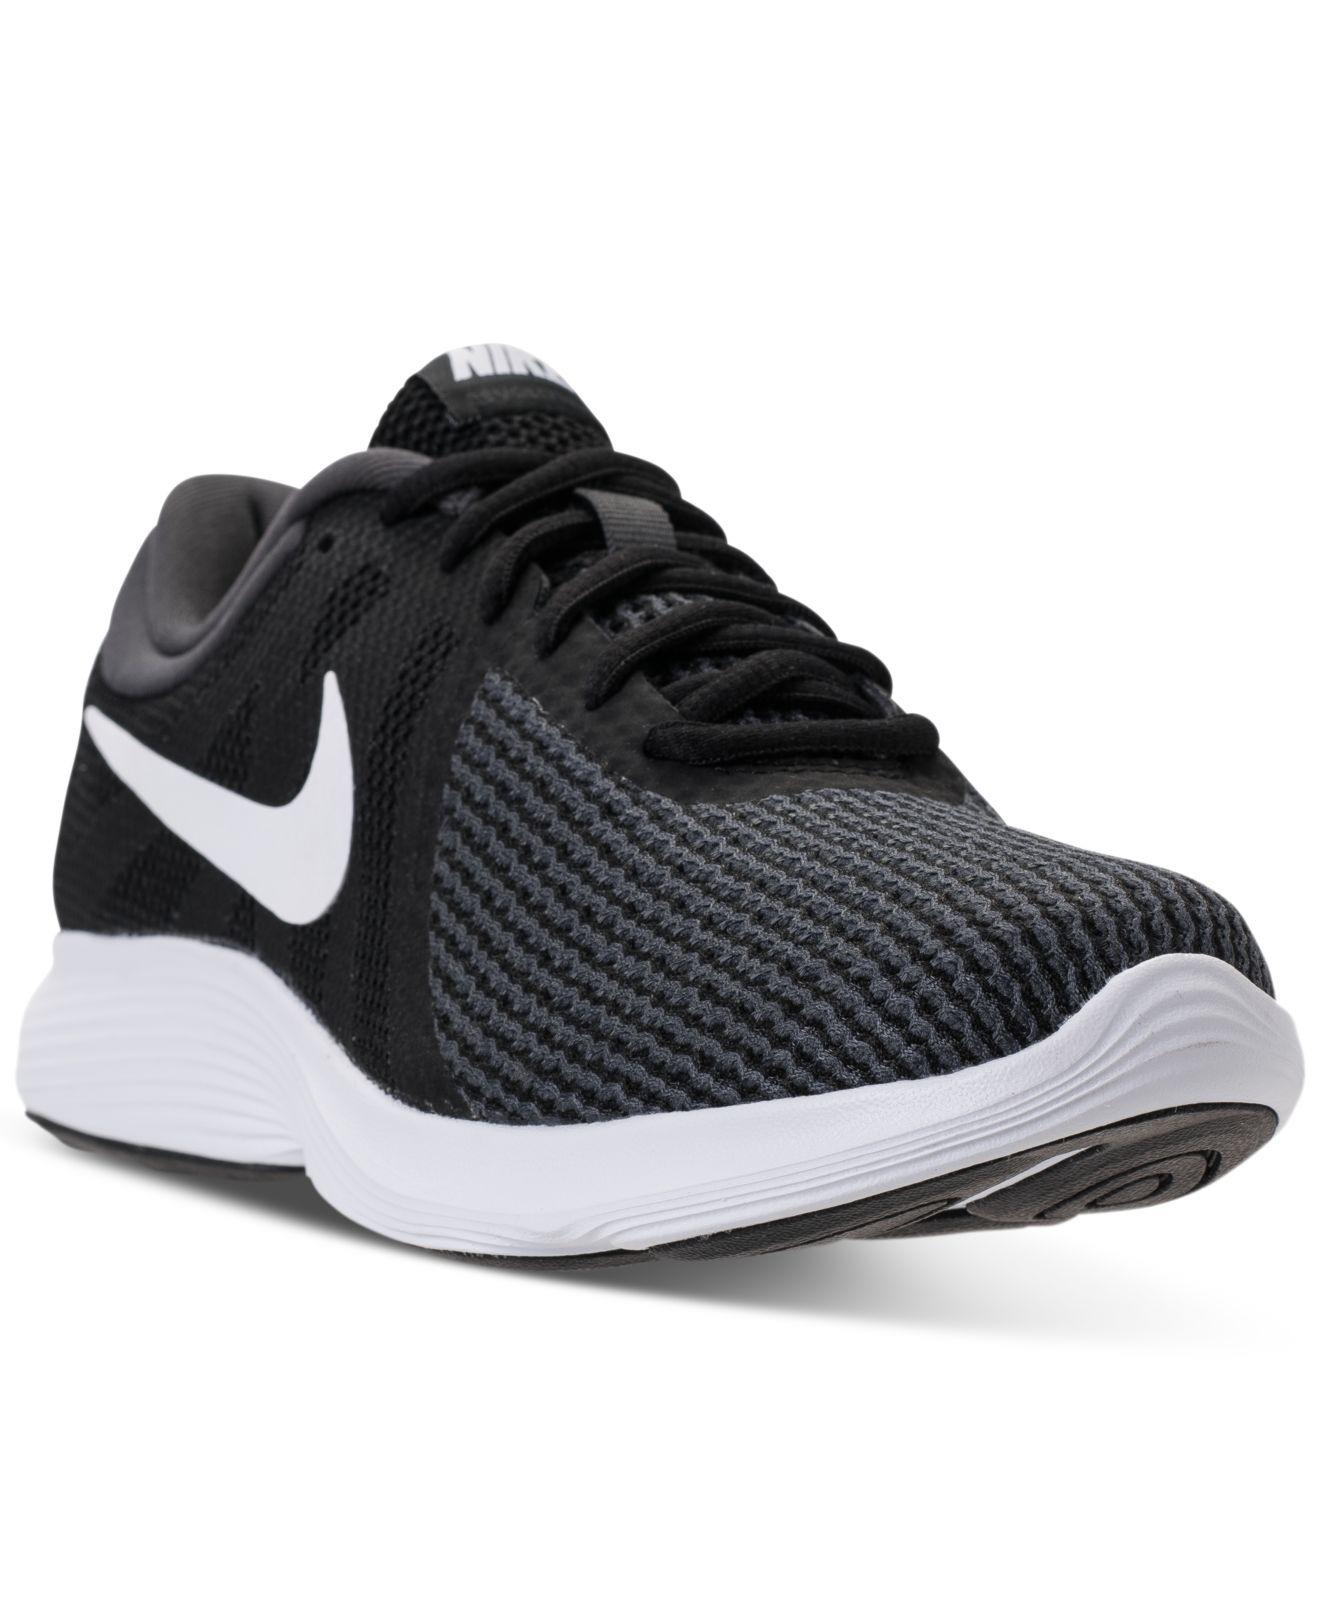 803a355bbd2a Lyst - Nike Women s Revolution 4 Running Sneakers From Finish Line ...